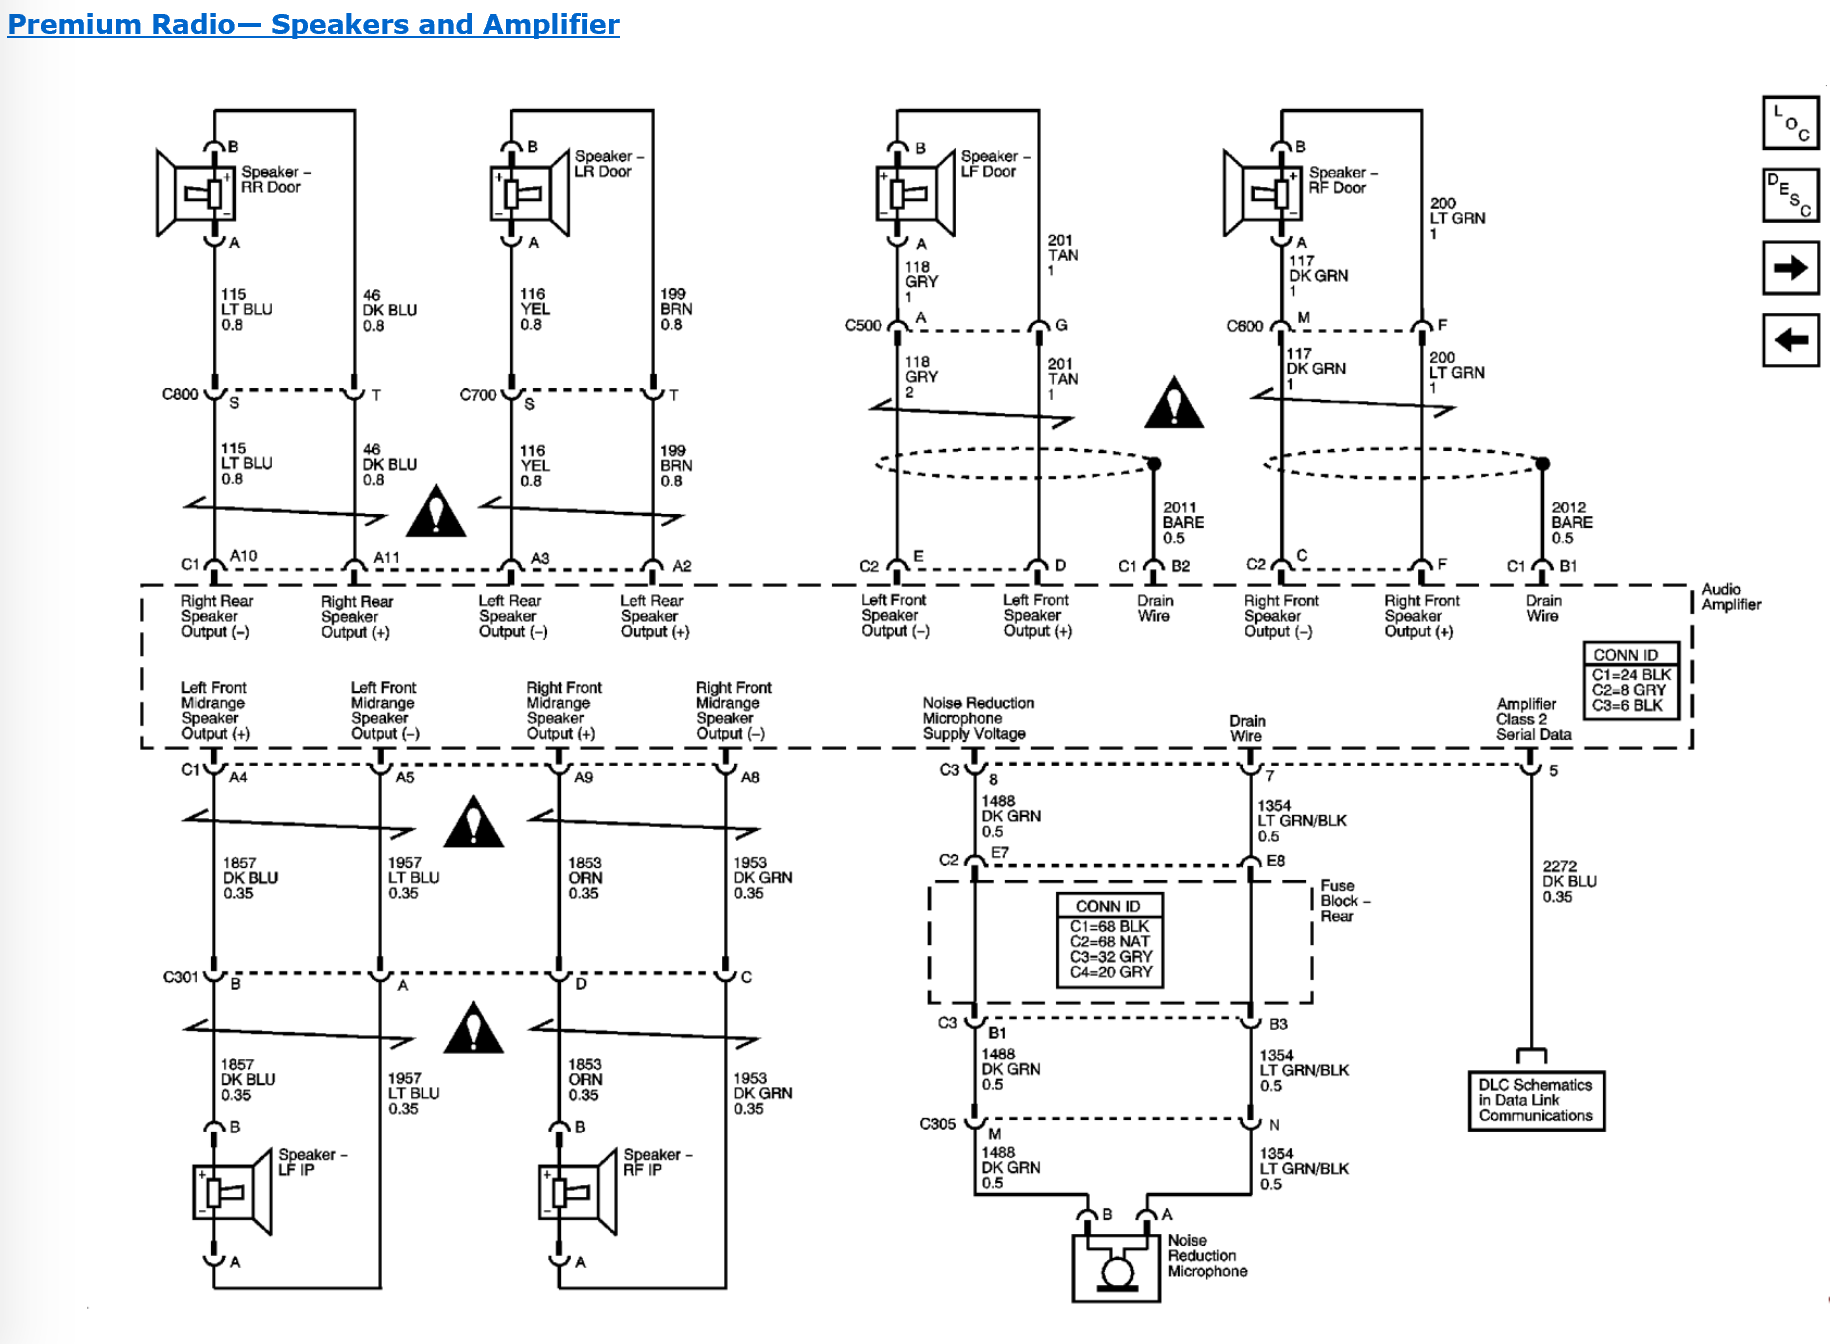 bulldog remote starter wiring diagram for 2003 chevy truck speaker wire diagram for 2003 chevy envoy #13